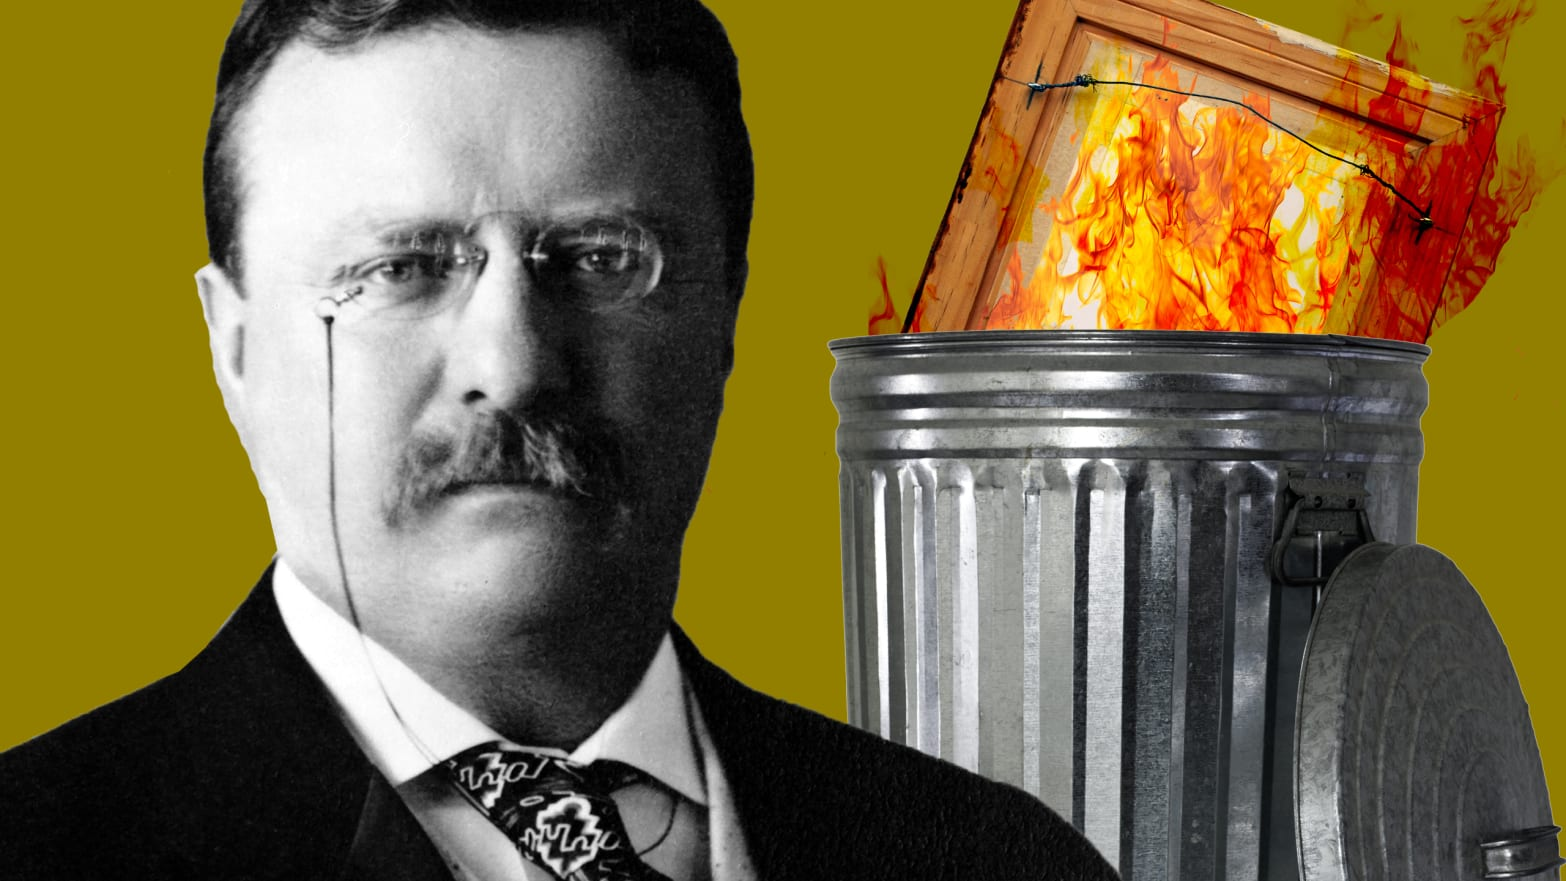 theodore roosevelt hated his